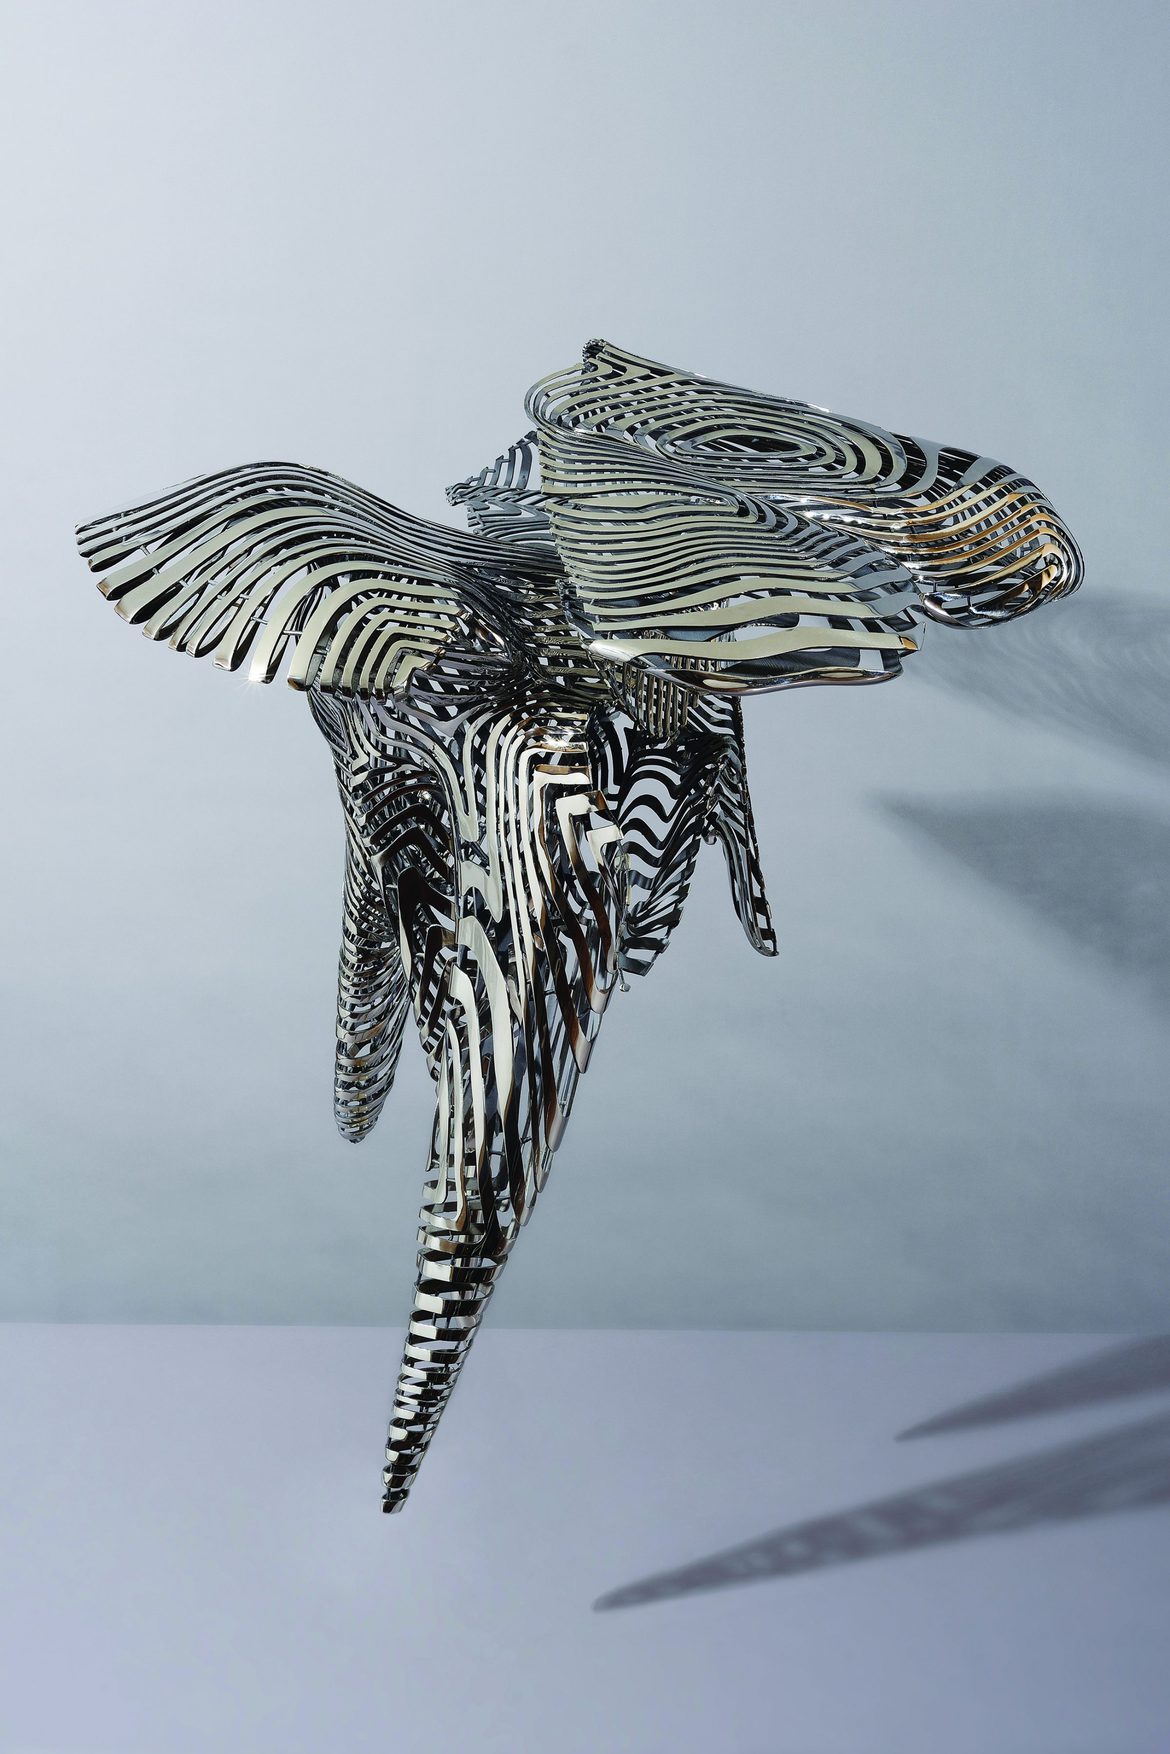 'Come to the Edge 3', 2012, stainless steel, 123 x 122 x 117 cm, edition 1 of 5 + 1AP